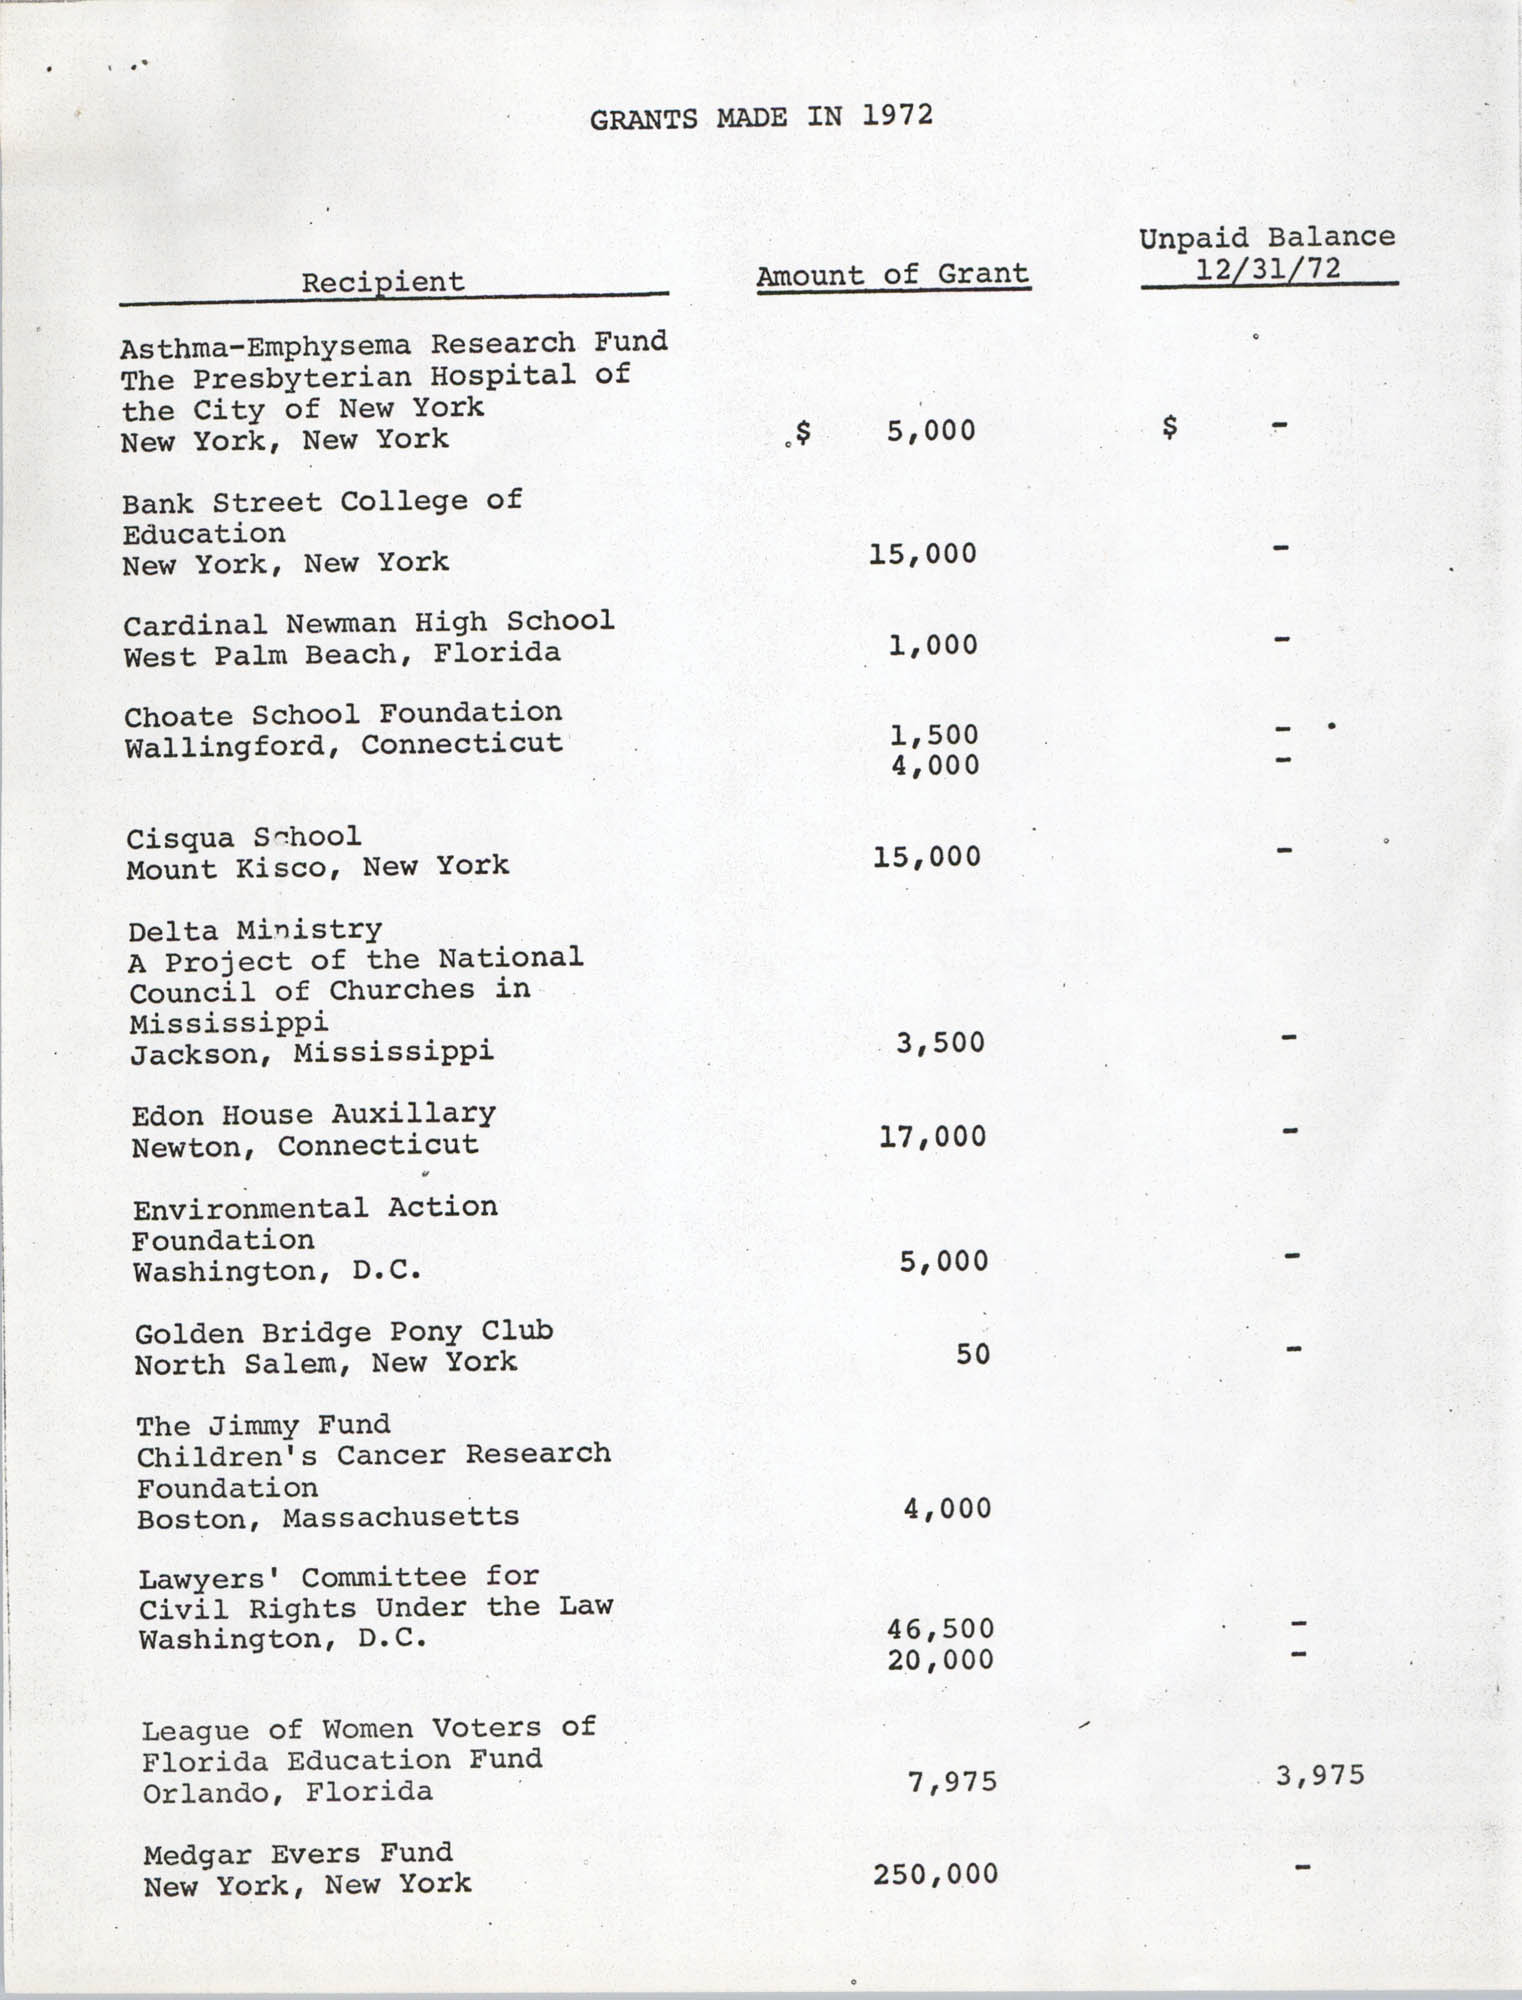 Josephine H. McIntosh Foundation Grant-Making Activities Report for 1972, Grants Page 1